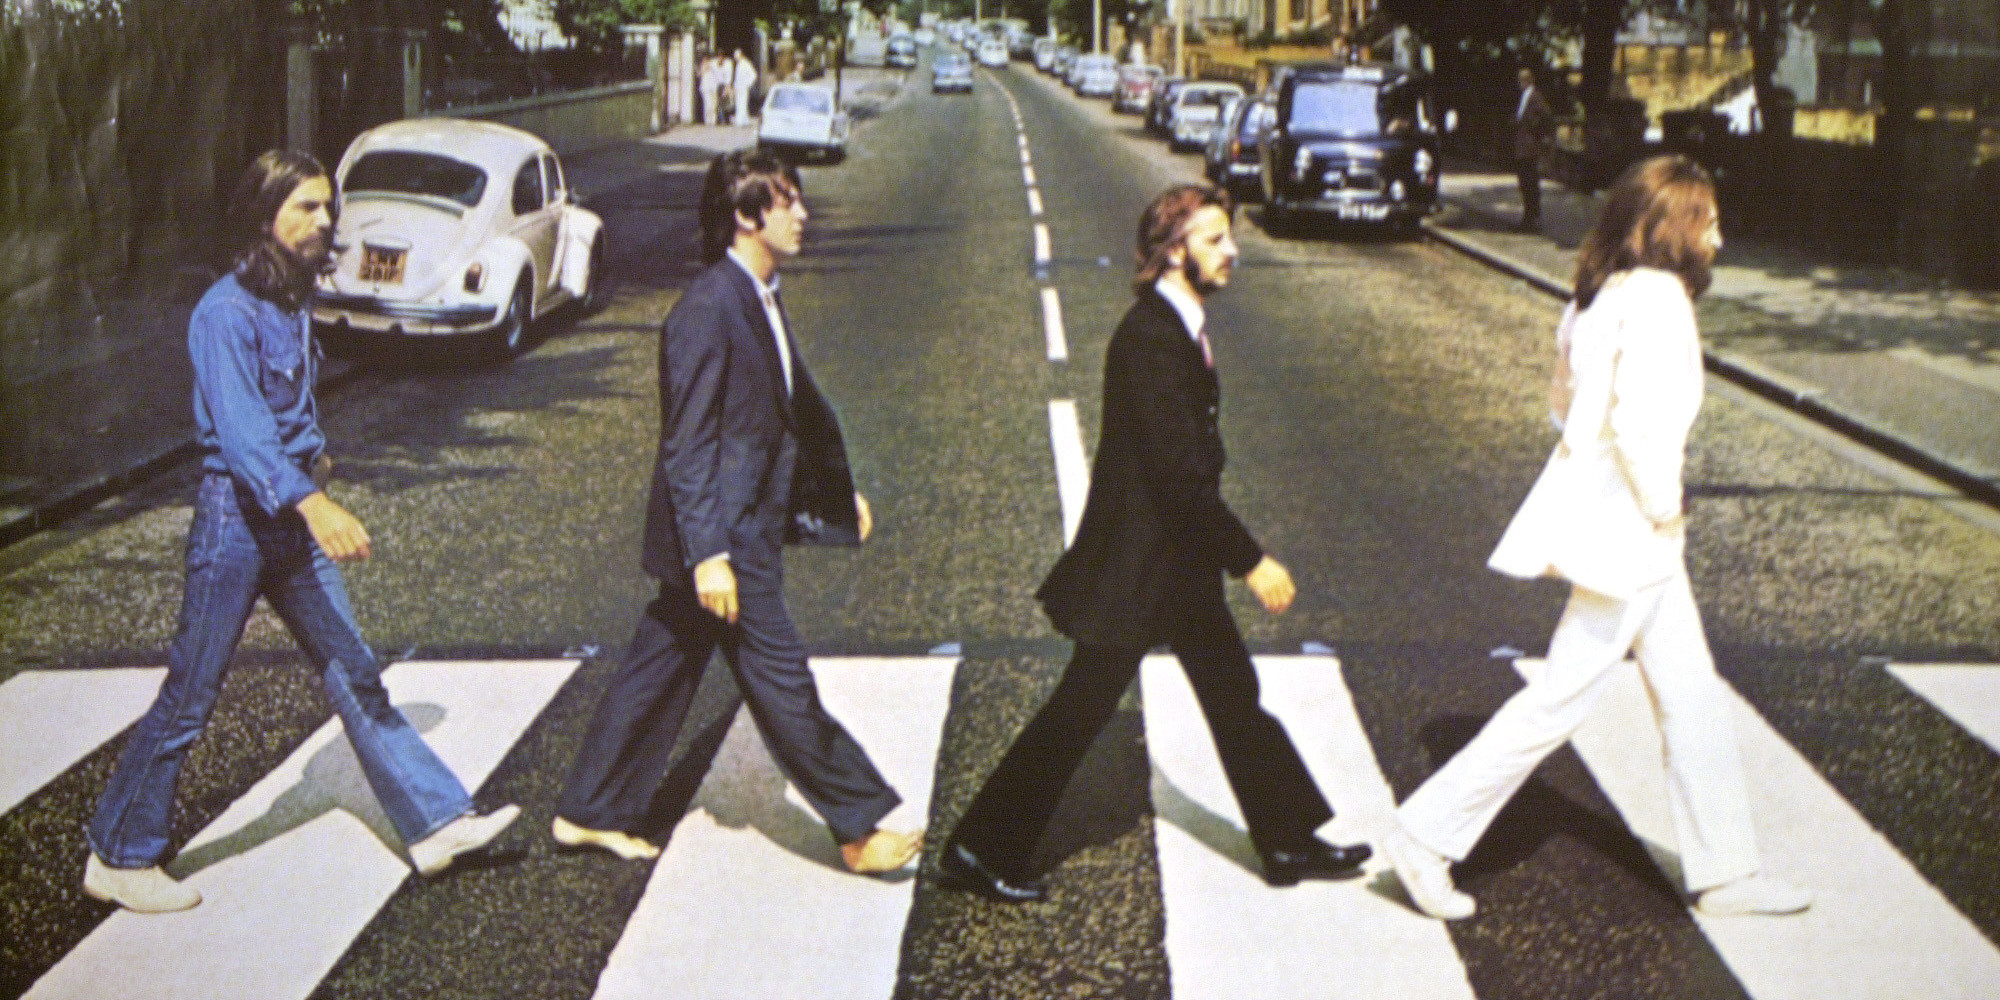 The Beatles Abbey Road : at the intersection of abbey road and tin pan alley huffpost ~ Hamham.info Haus und Dekorationen